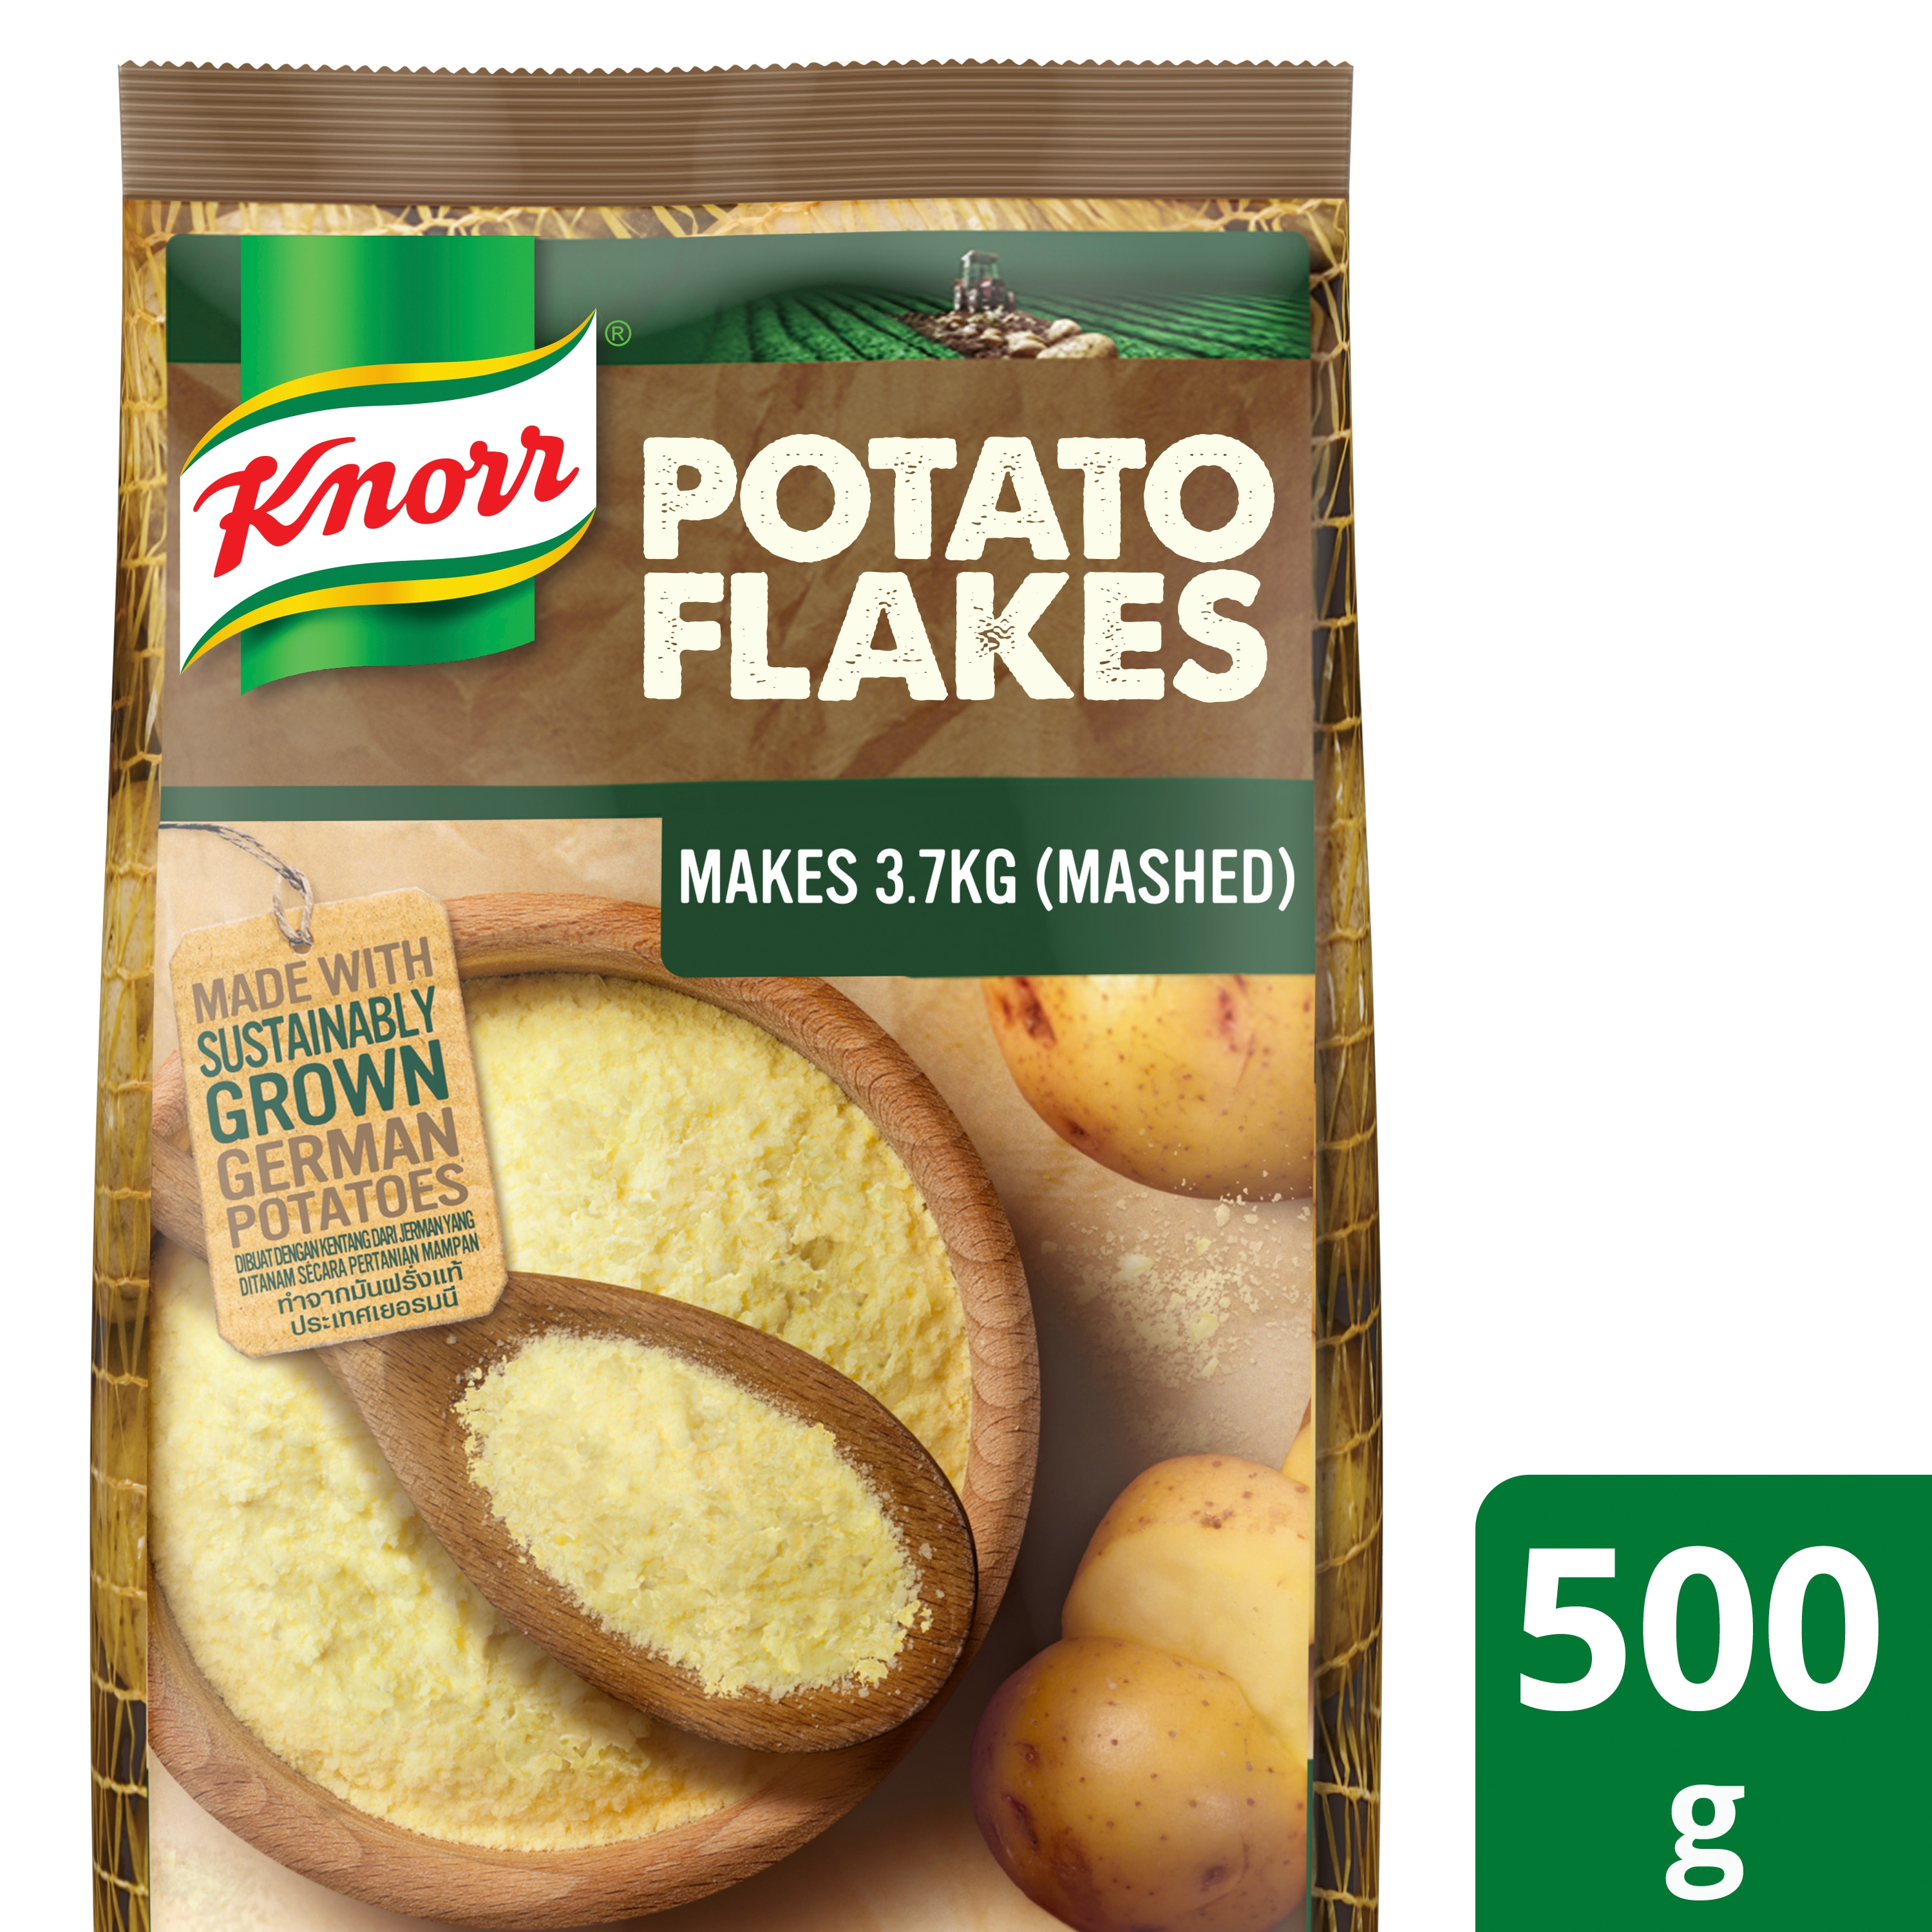 Knorr Potato Flakes 500g - Knorr Mashed Potato is an easy to use product that gives you consistently great tasting mashed potatoes every time.